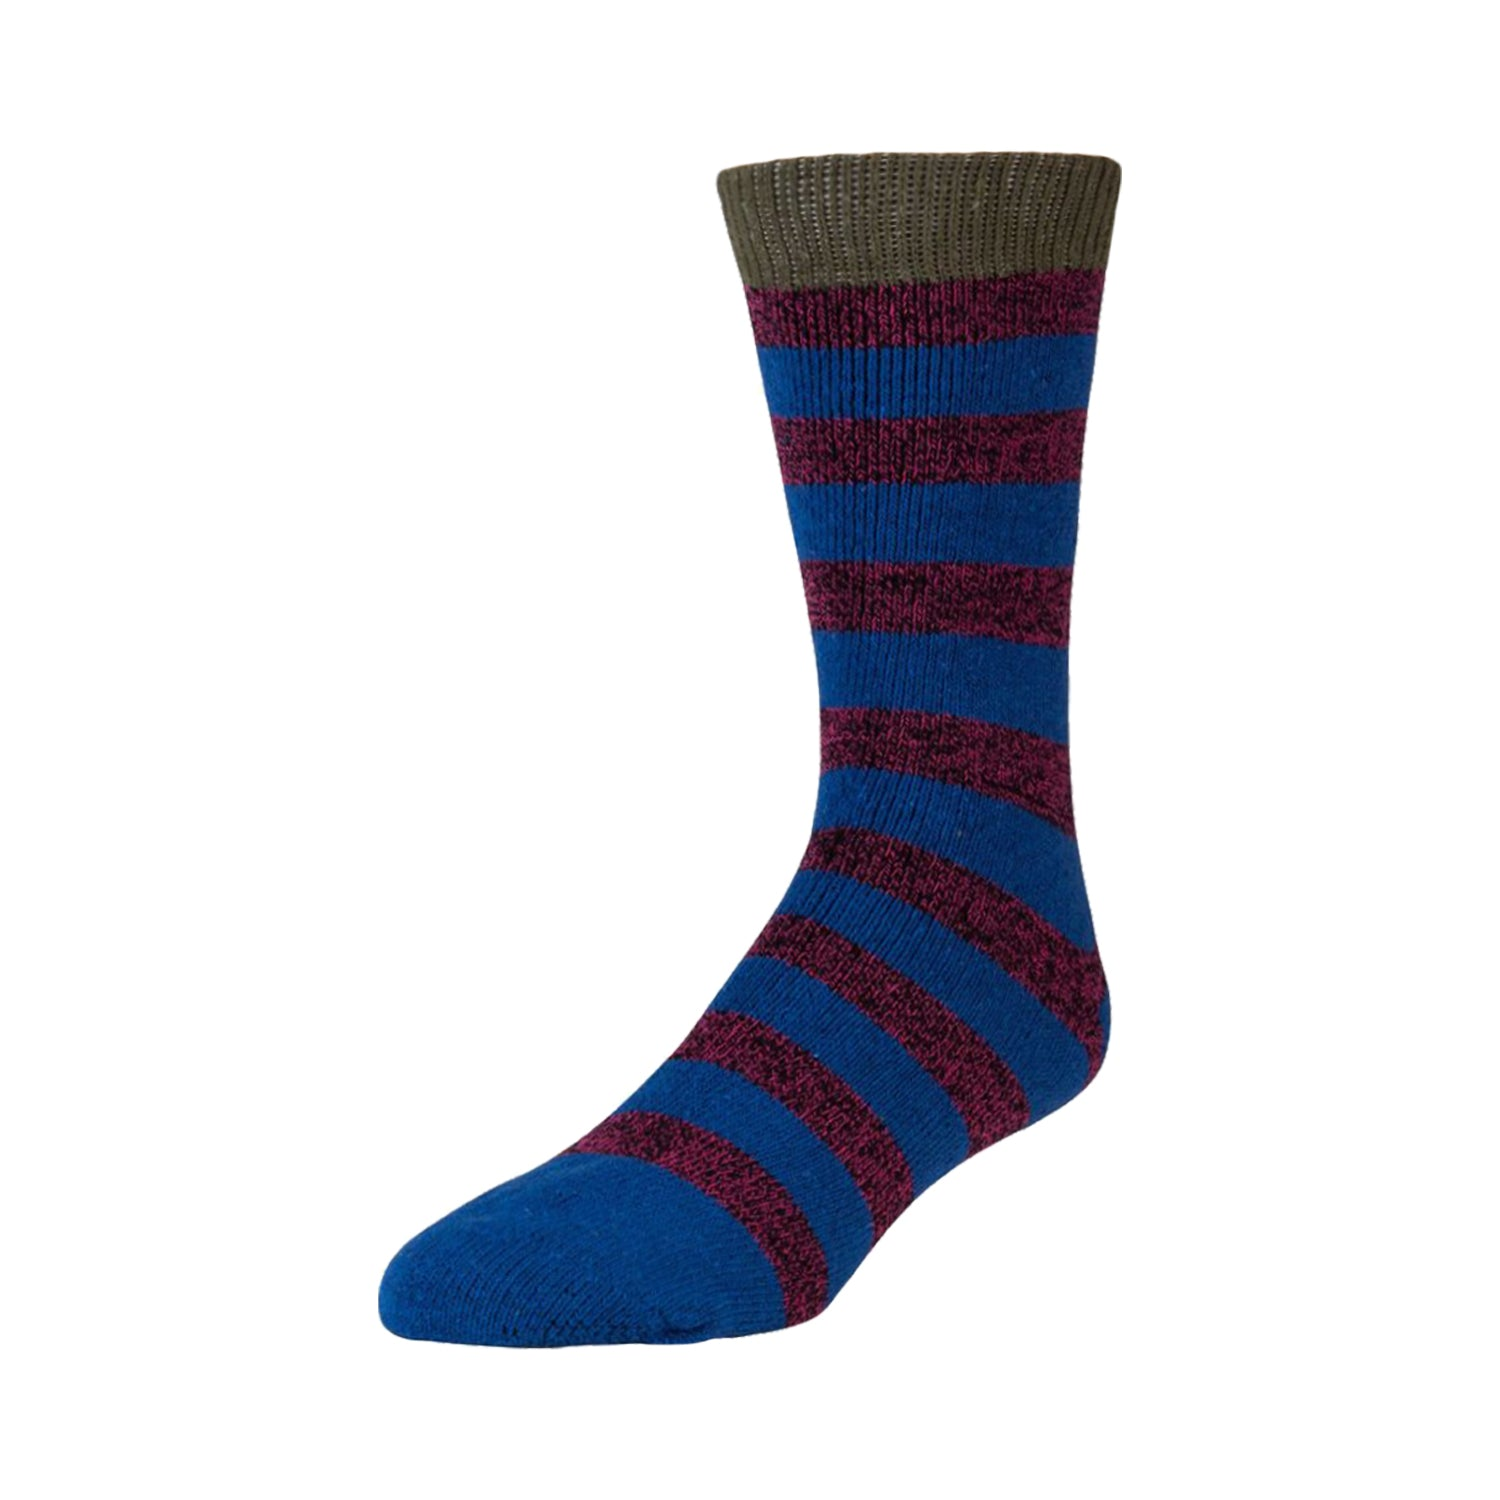 Men's Boot Thermal Hiking Striped Crew Socks, Size 10-13